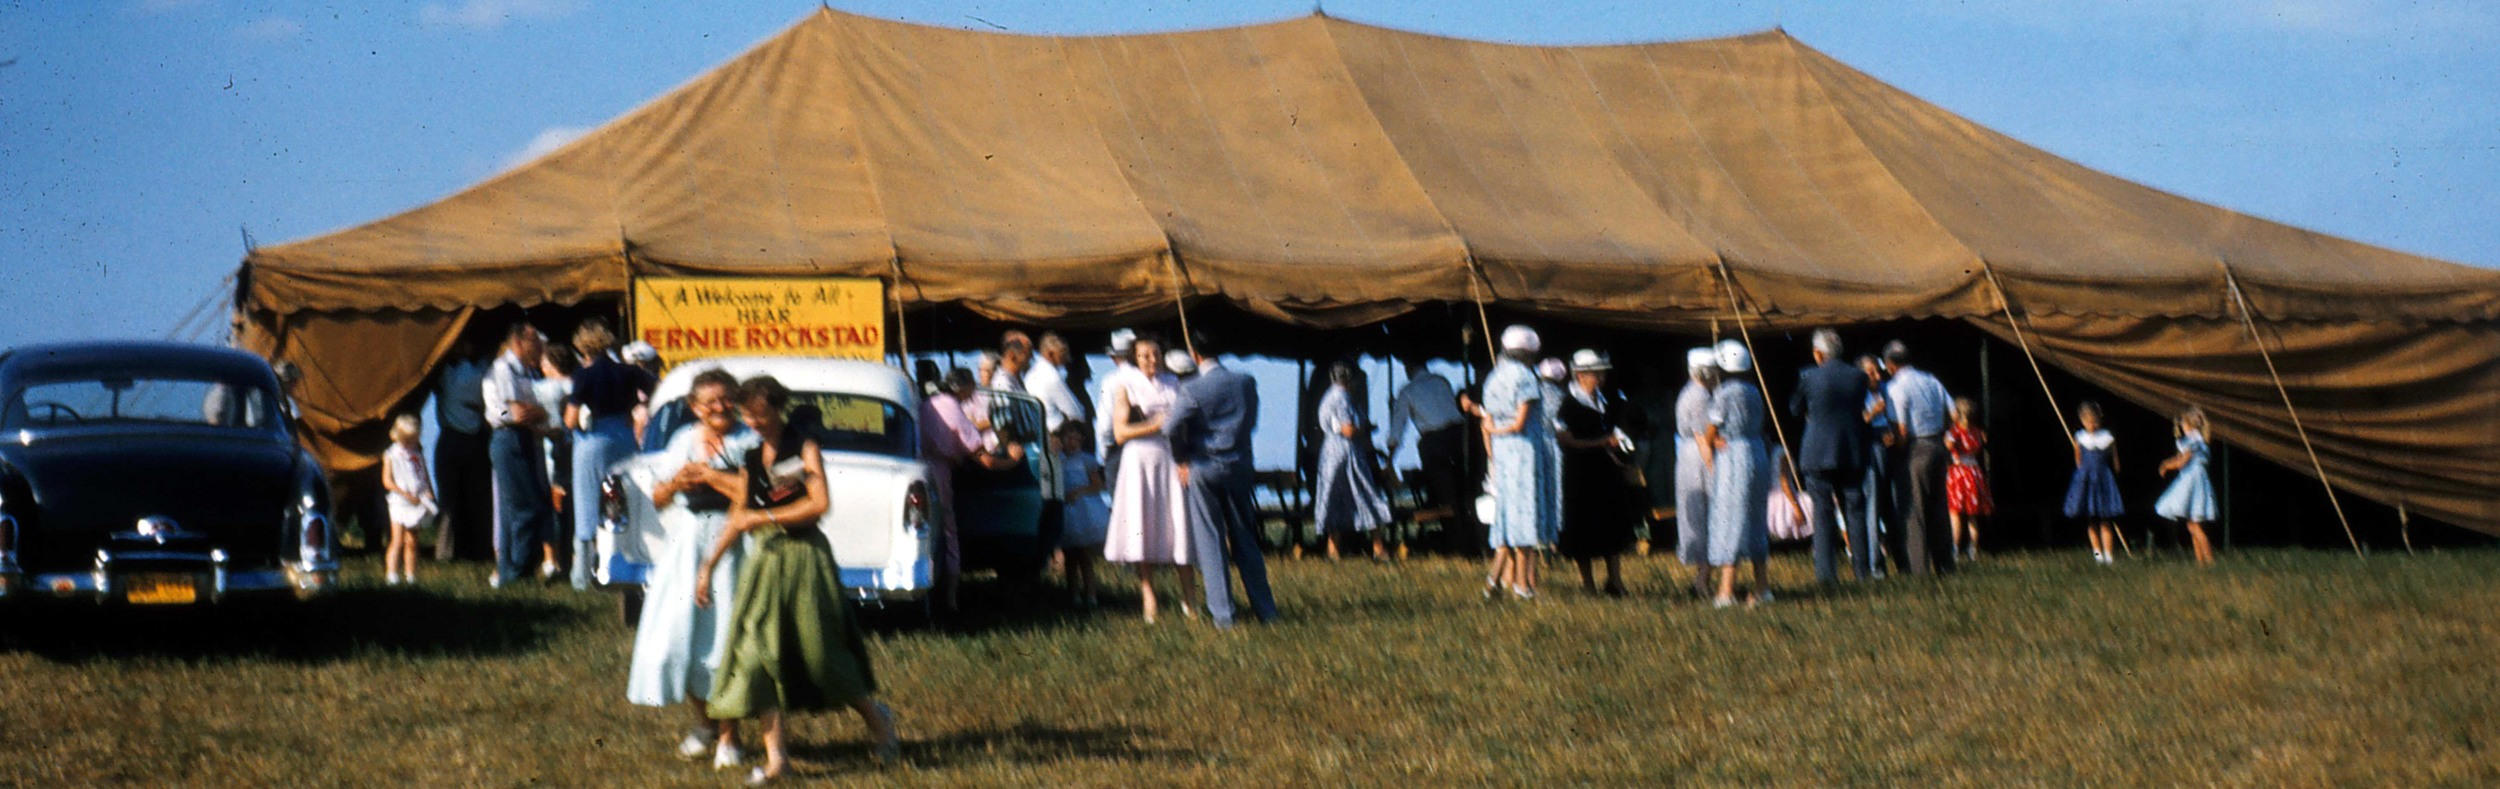 Guests departing after one of Pastor Ernie's many packed tent meetings.